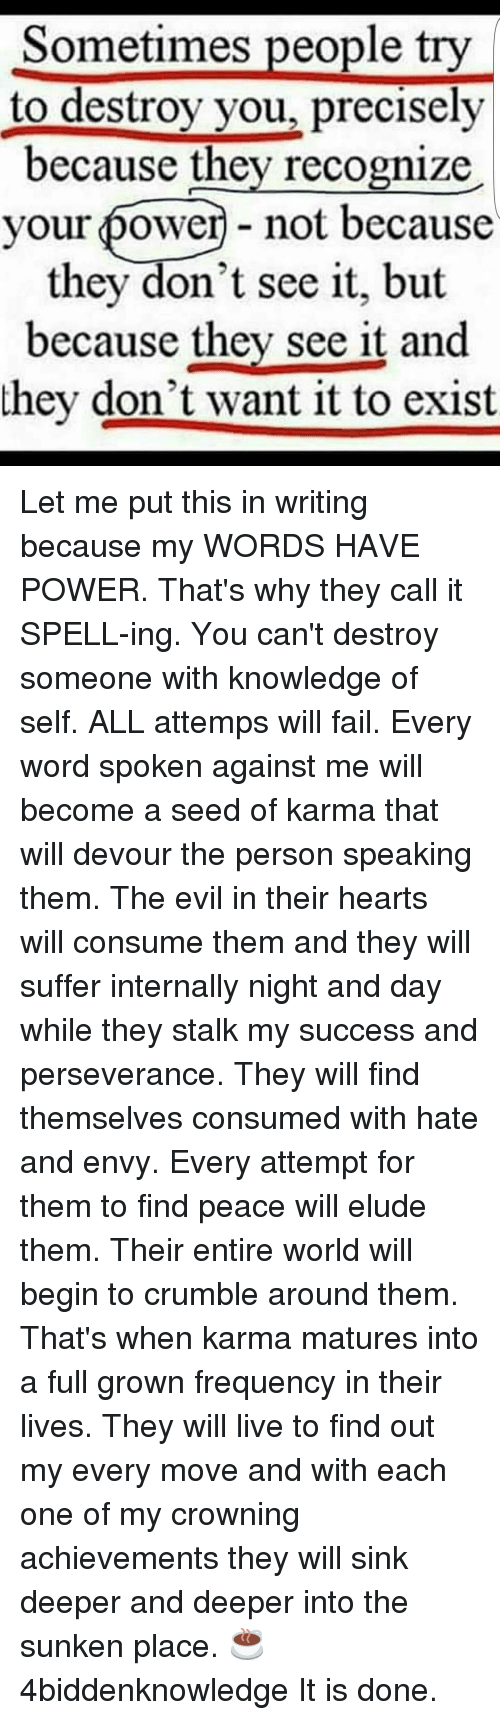 Memes, Stalking, and Karma: Sometimes people try  to destroy you, precisely  because they recognize  your power-not because  they don't see it, but  because they see it and  they don't want it to exist Let me put this in writing because my WORDS HAVE POWER. That's why they call it SPELL-ing. You can't destroy someone with knowledge of self. ALL attemps will fail. Every word spoken against me will become a seed of karma that will devour the person speaking them. The evil in their hearts will consume them and they will suffer internally night and day while they stalk my success and perseverance. They will find themselves consumed with hate and envy. Every attempt for them to find peace will elude them. Their entire world will begin to crumble around them. That's when karma matures into a full grown frequency in their lives. They will live to find out my every move and with each one of my crowning achievements they will sink deeper and deeper into the sunken place. ☕ 4biddenknowledge It is done.